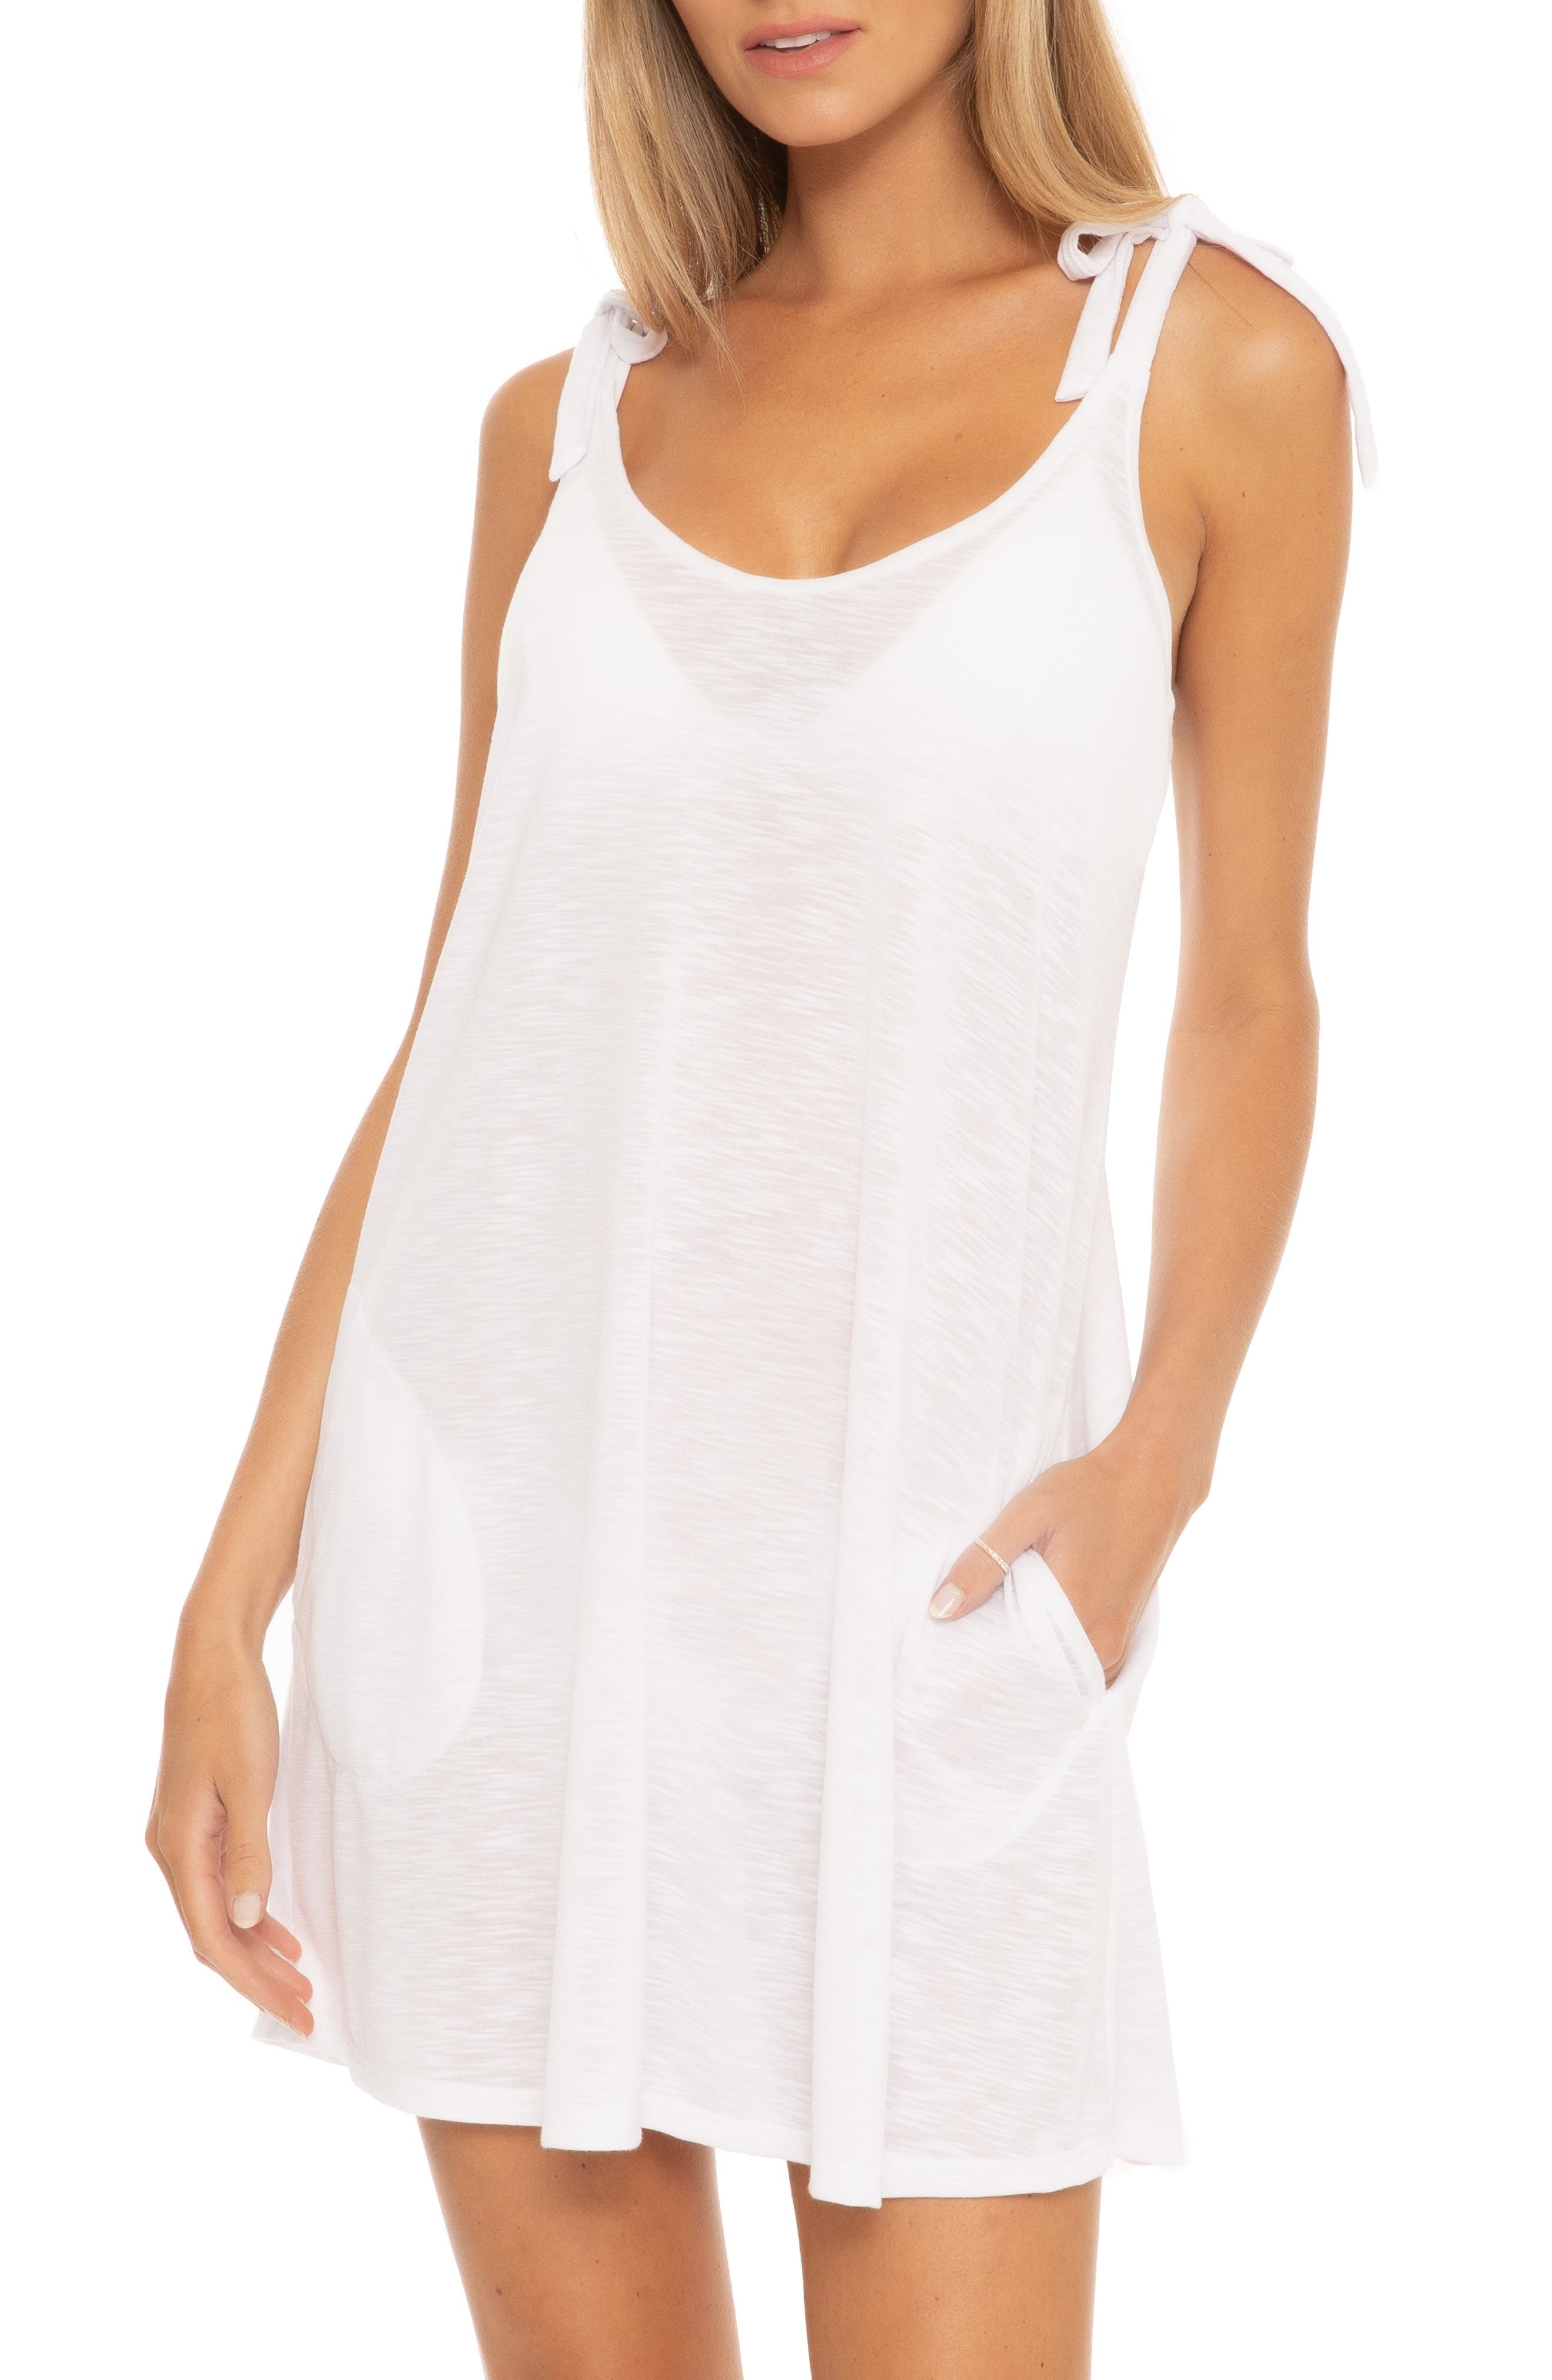 Breezy Cover-Up Dress